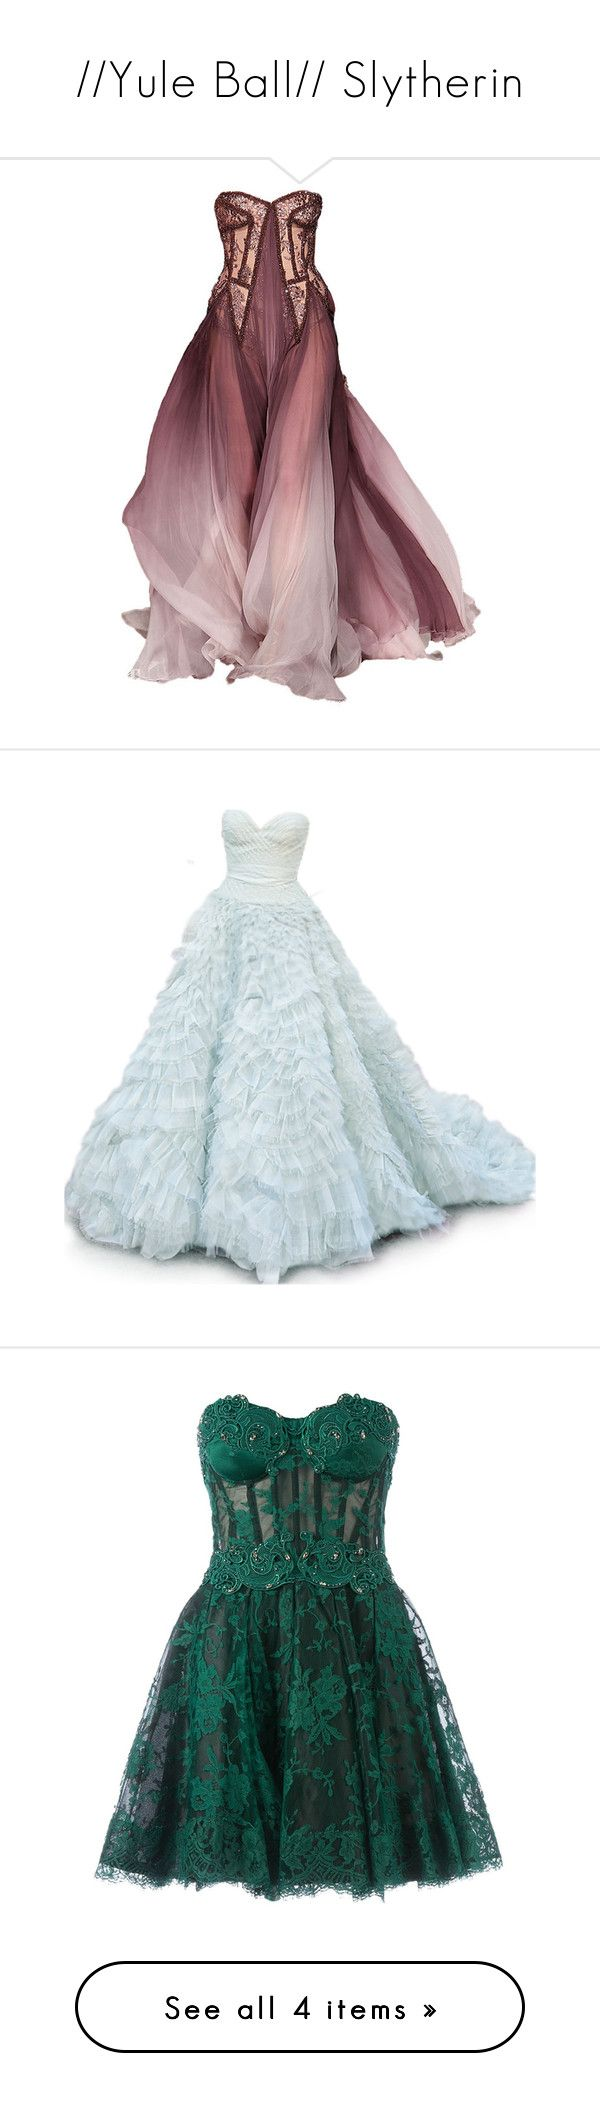 """""""//Yule Ball// Slytherin"""" by jmcunningham ❤ liked on Polyvore featuring dresses, gowns, long dresses, vestidos, oscar de la renta gowns, blue ball gown, oscar de la renta, blue gown, short dresses and green"""